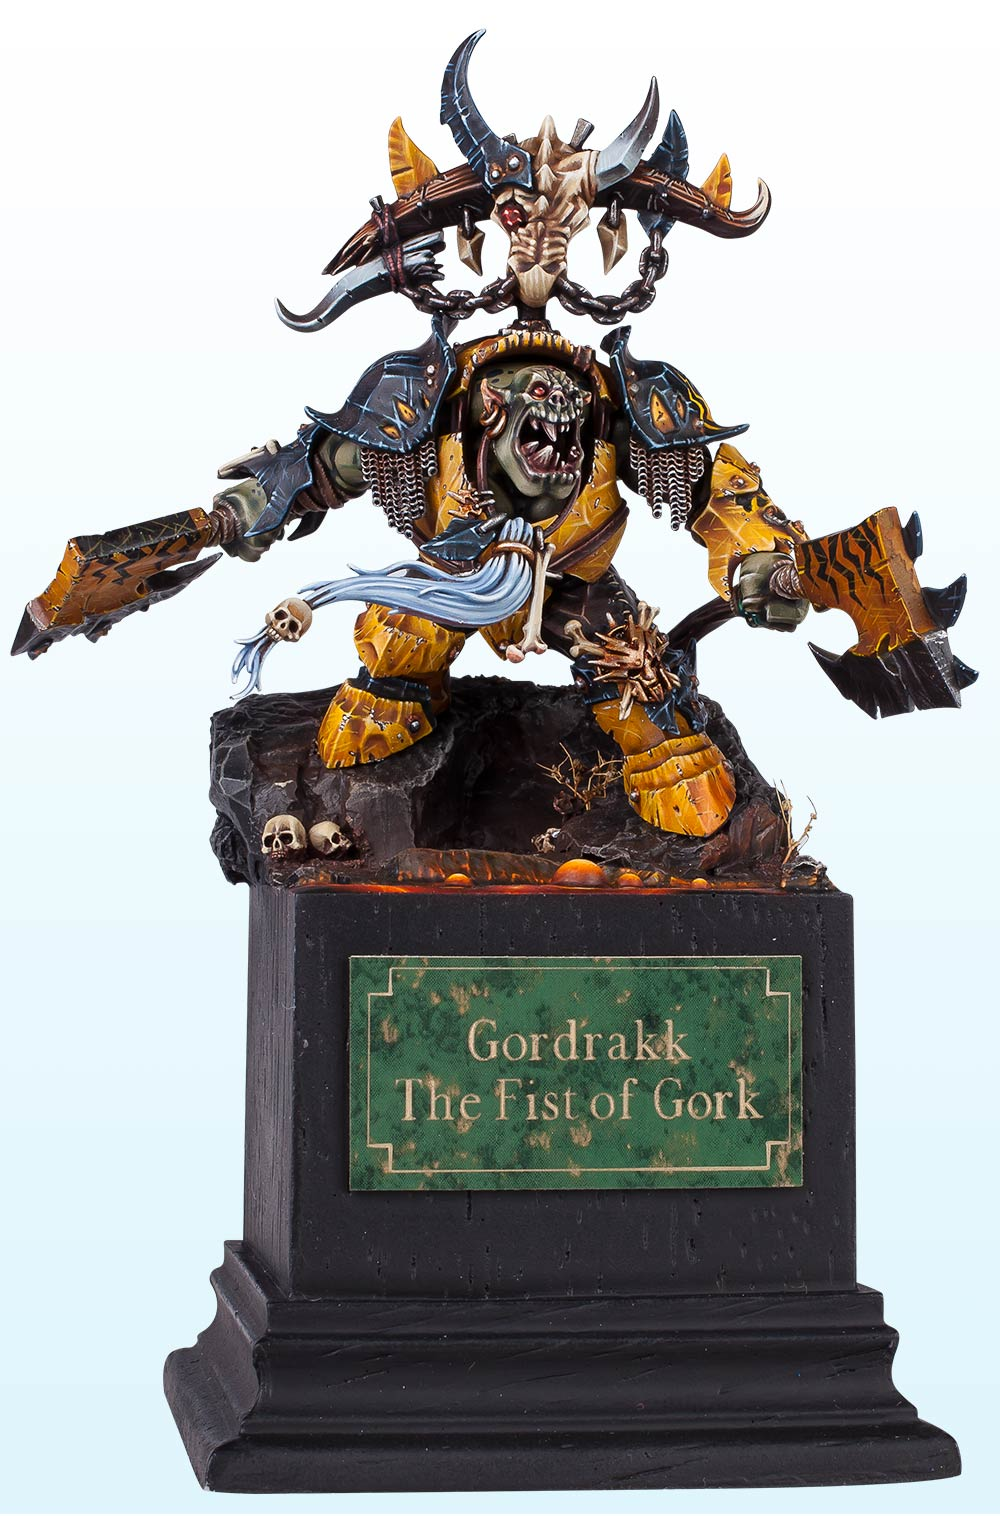 Single Model: Gold & Slayer Sword Winner – Warhammer Age of Sigmar 2016